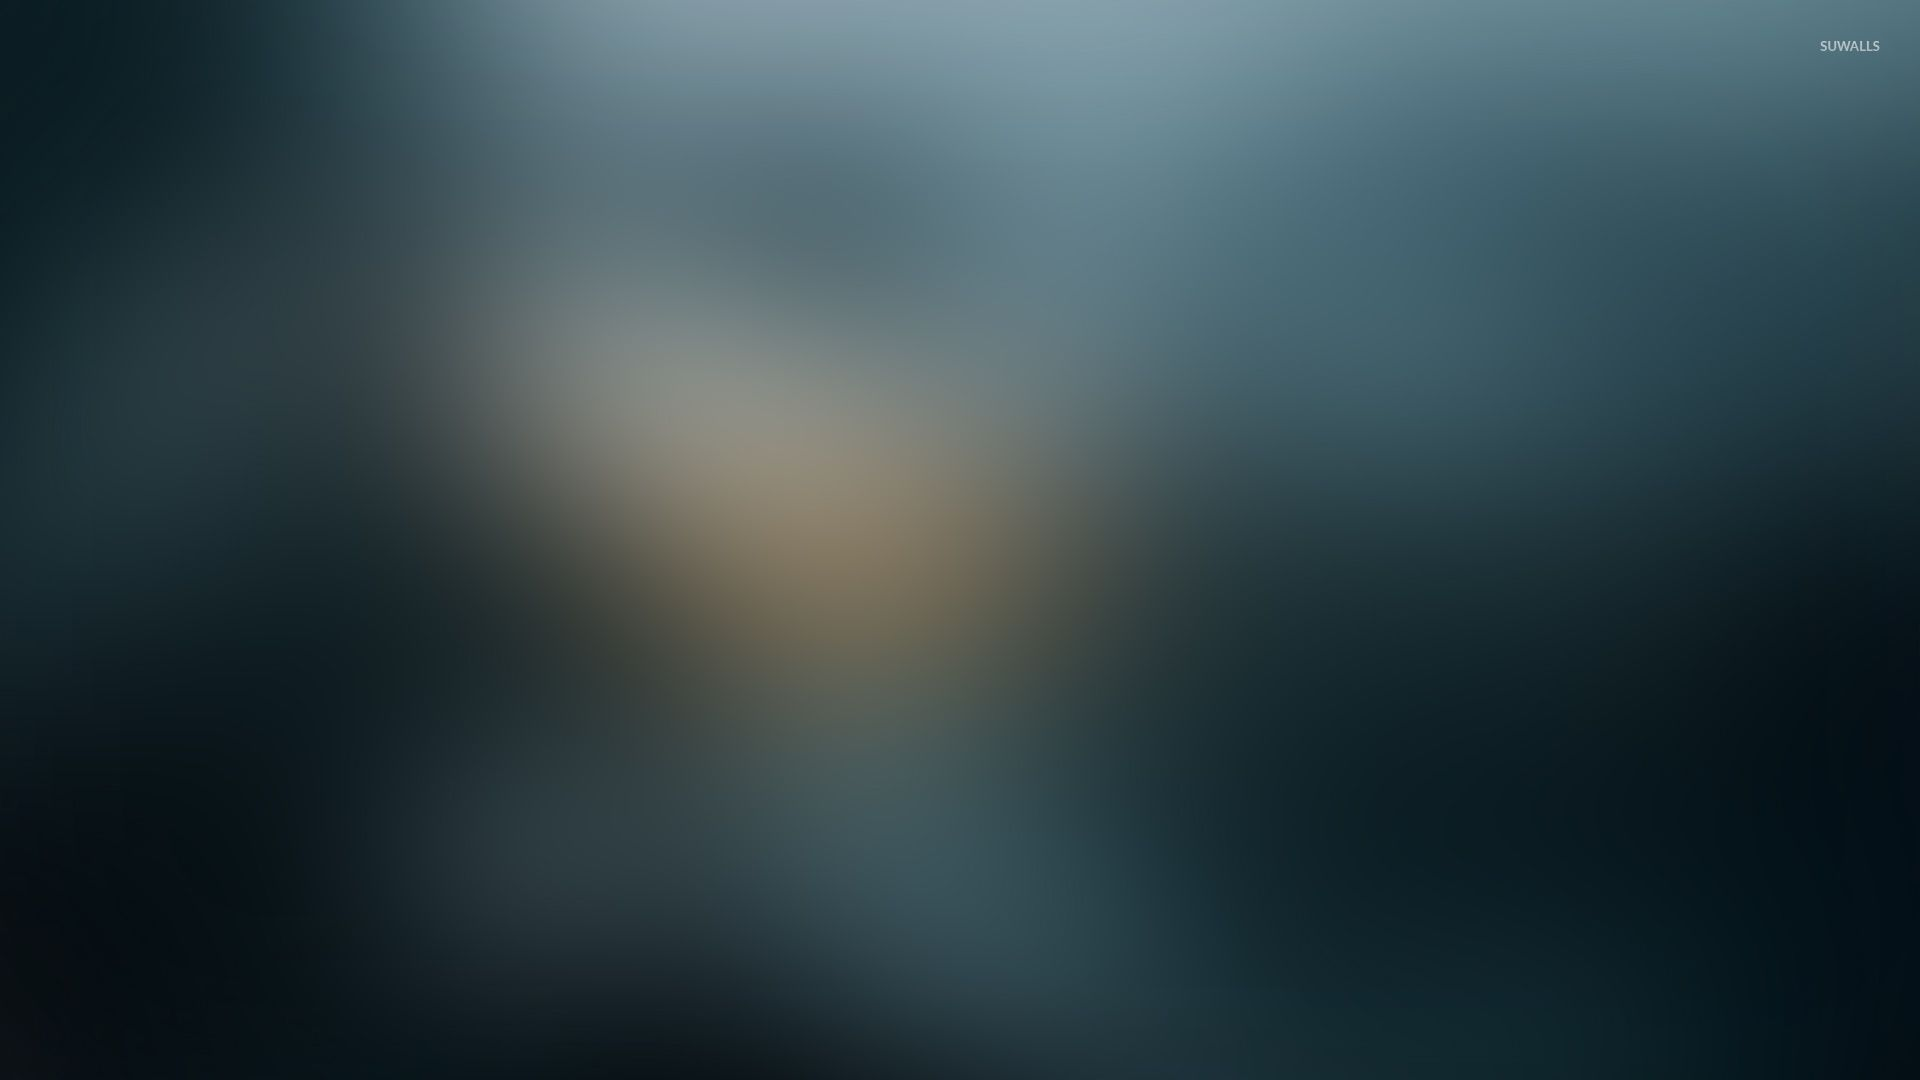 Blue blur wallpaper - Abstract wallpapers - #29047